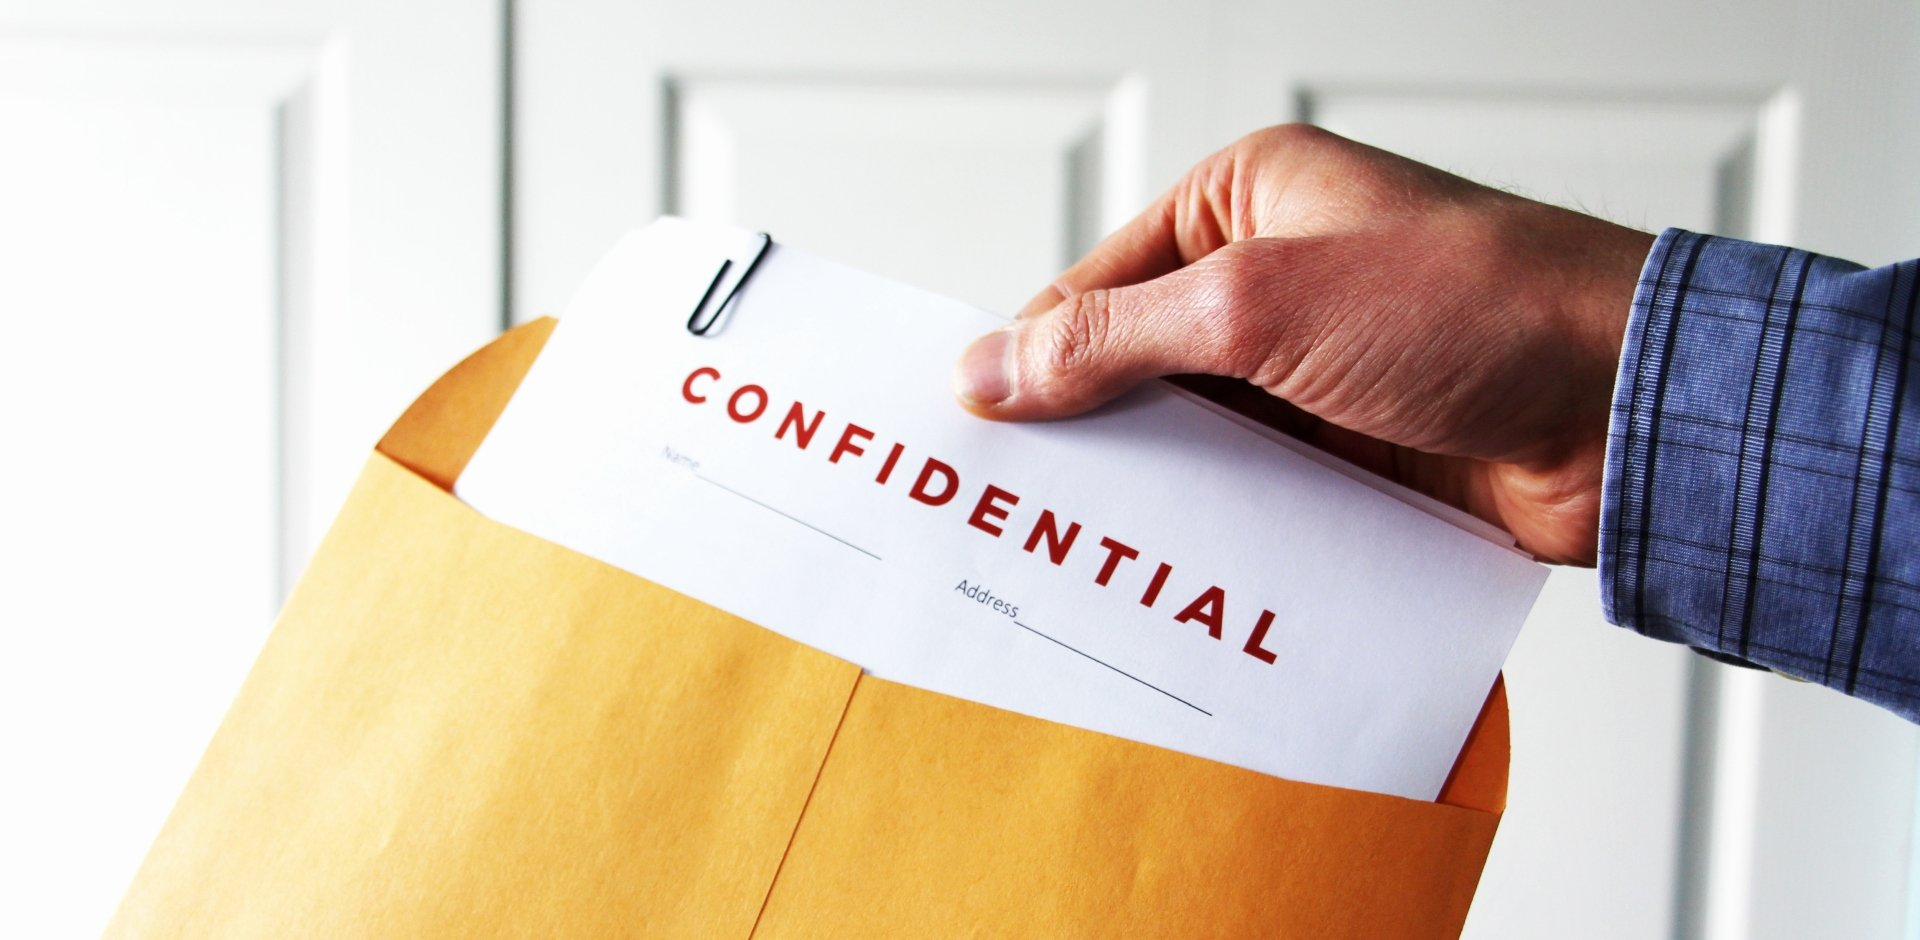 Confidentiality Clause for Documents Inspirational Phipa and Confidentiality